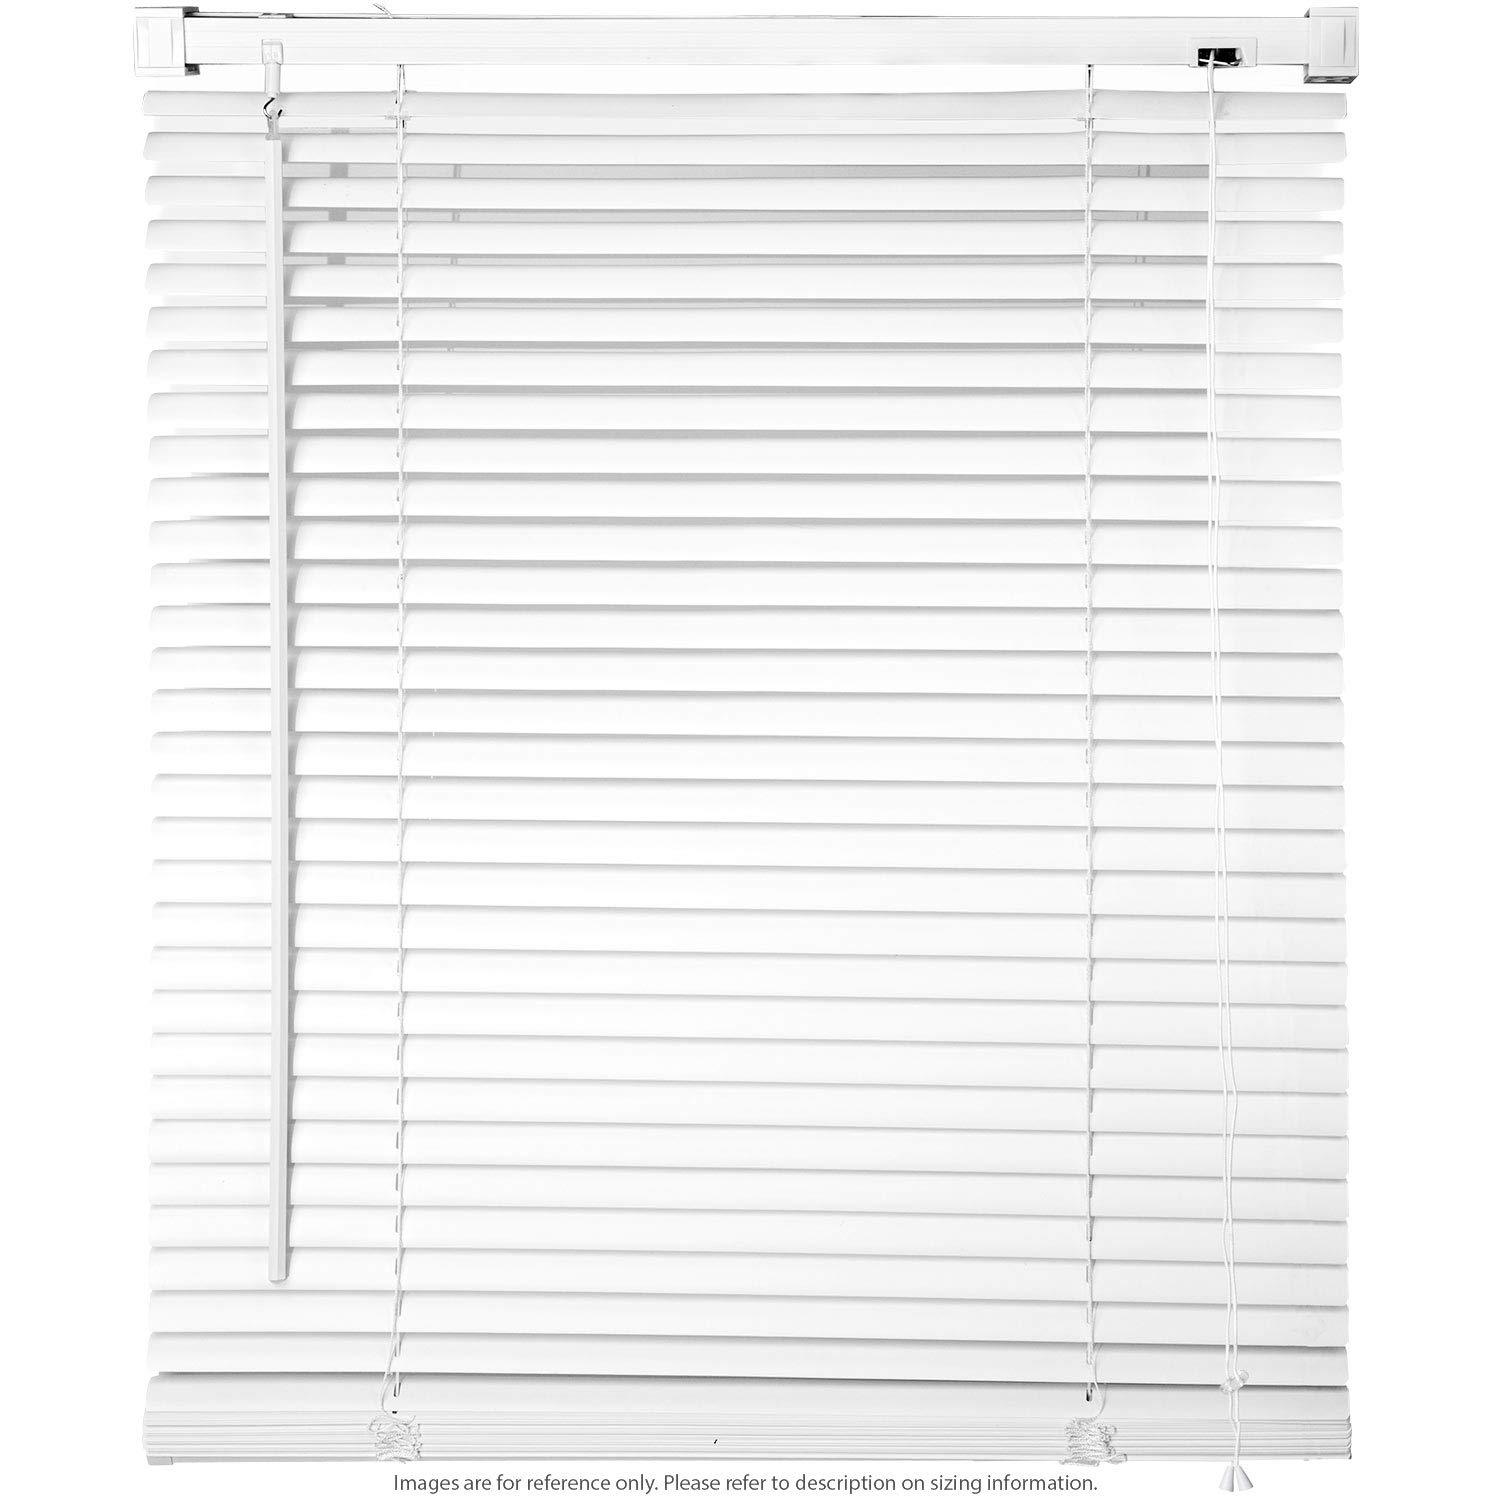 44 W x 64 H Window Blinds 1 Slat PVC Vinyl Venetian Horizontal Privacy Shade Anti-UV White KapscoMoto